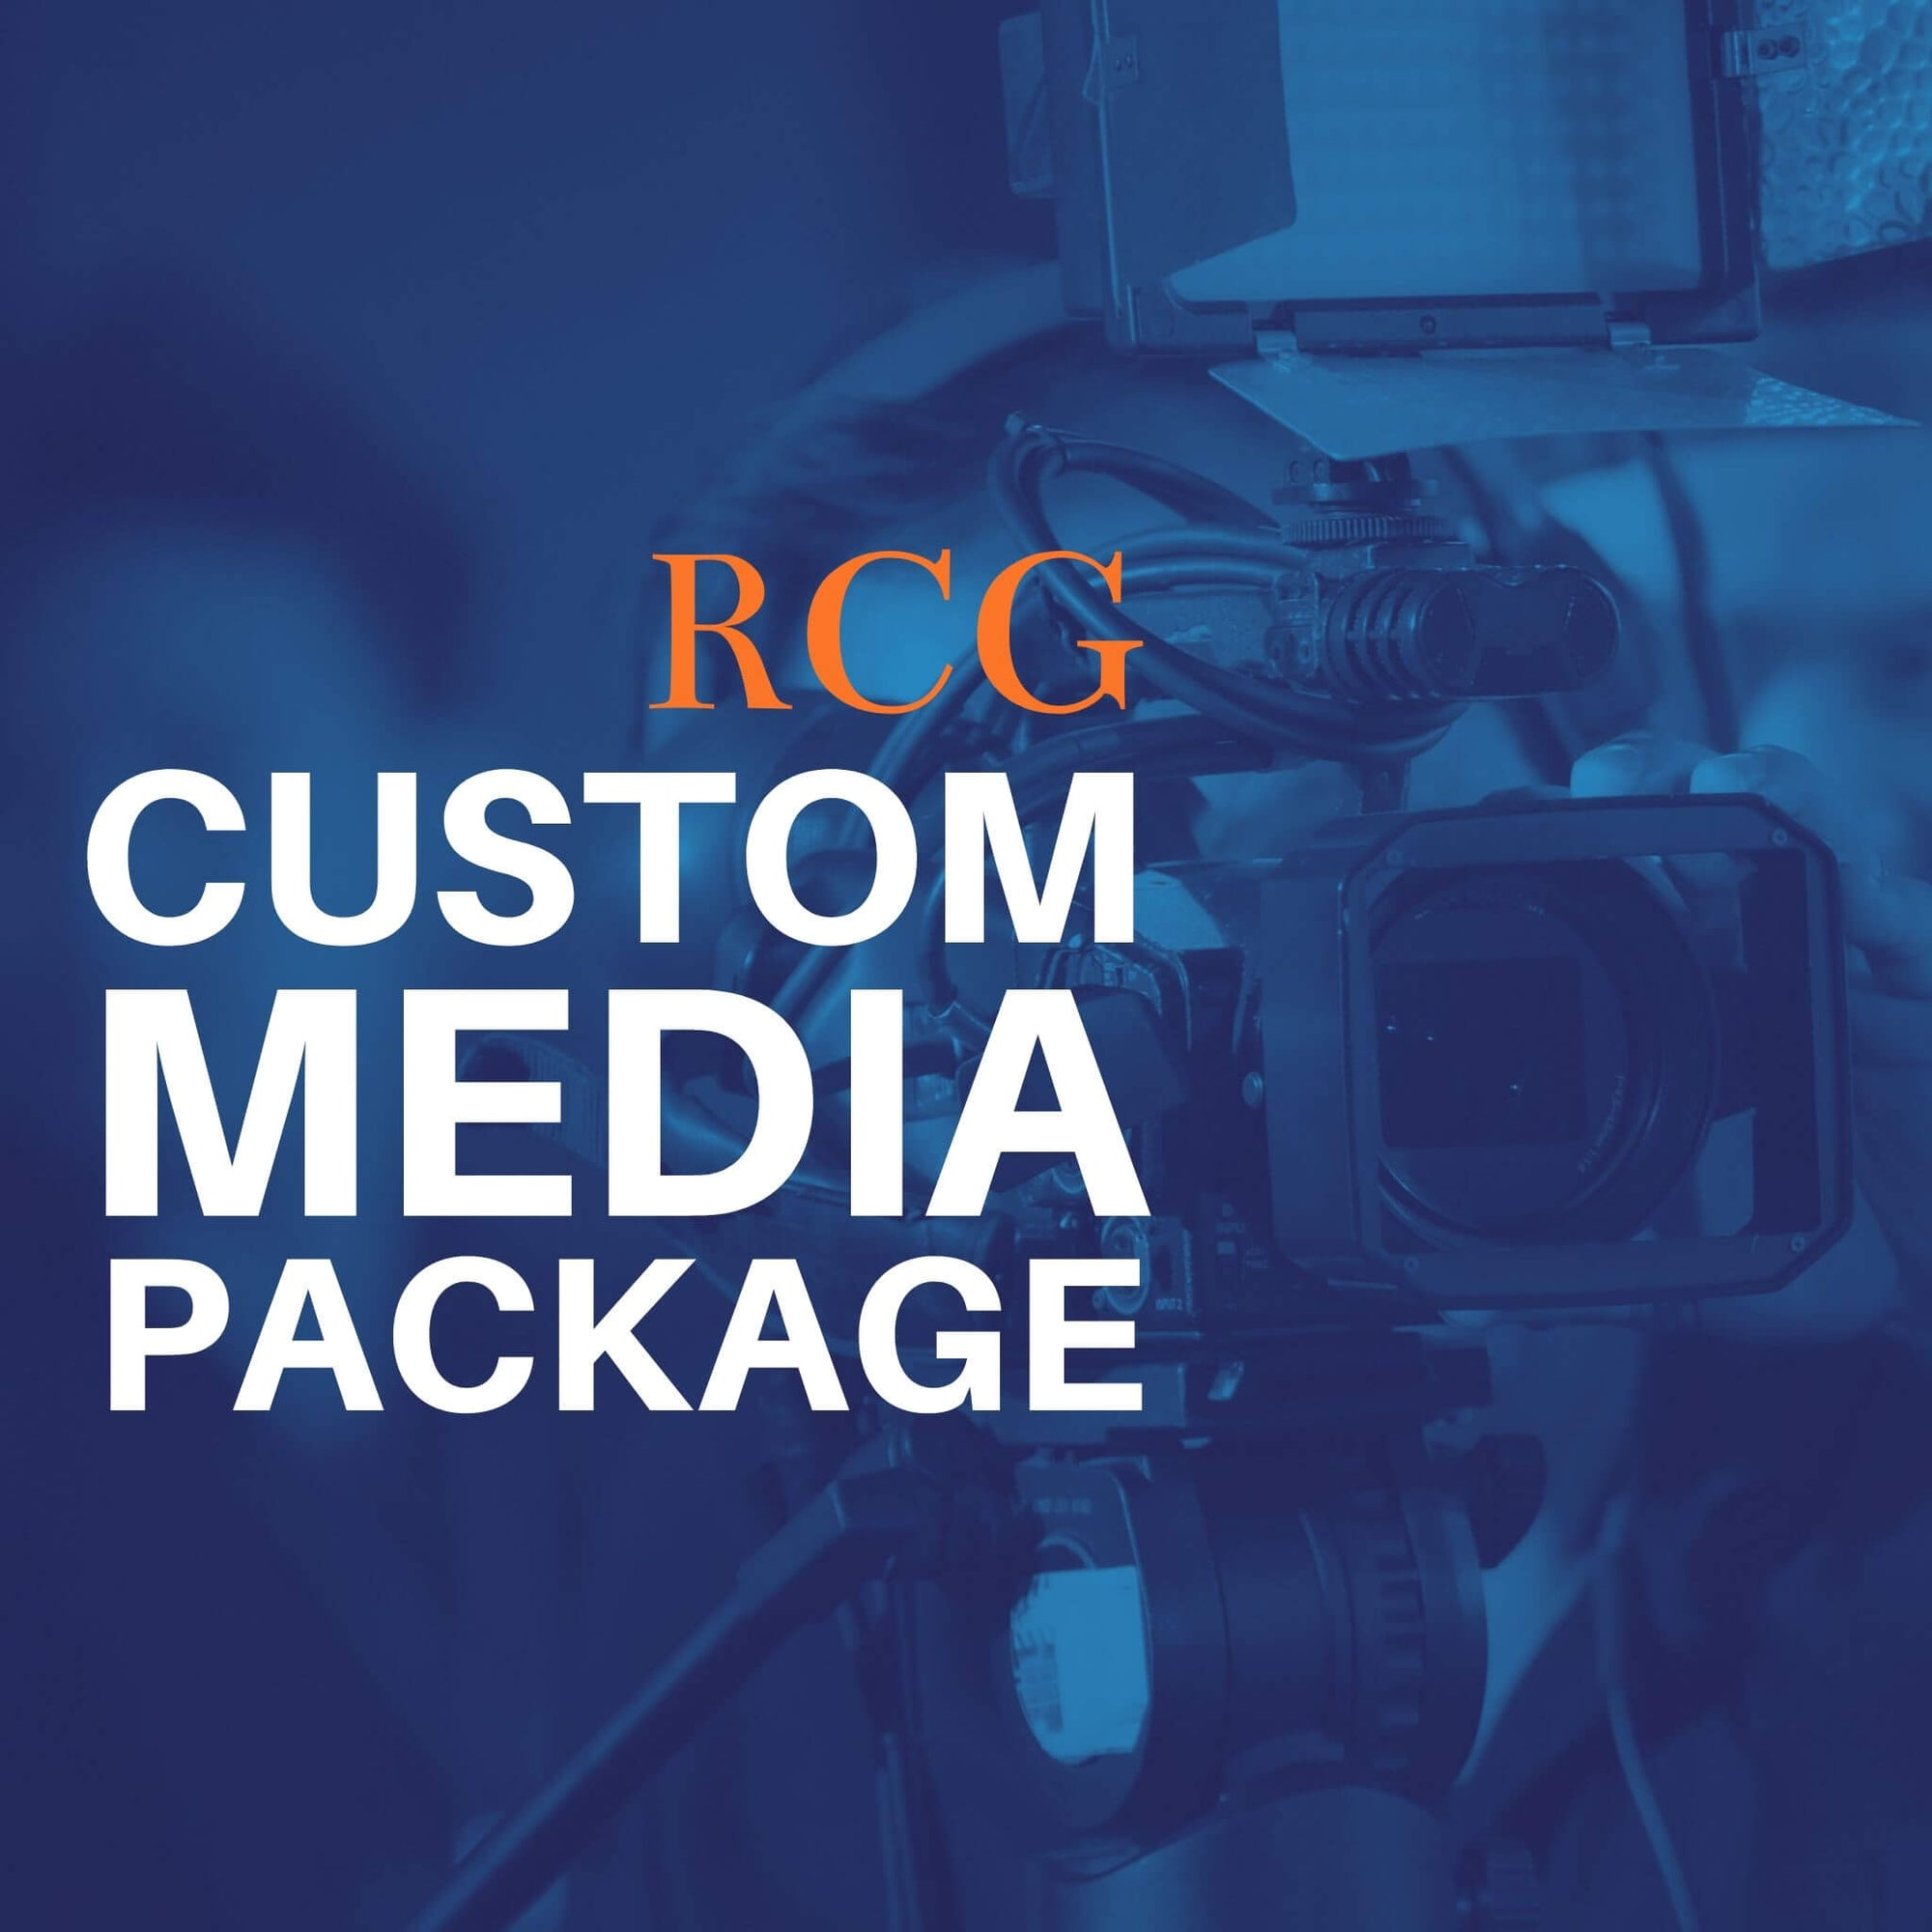 RCG Custom Media Package: Request A Quote